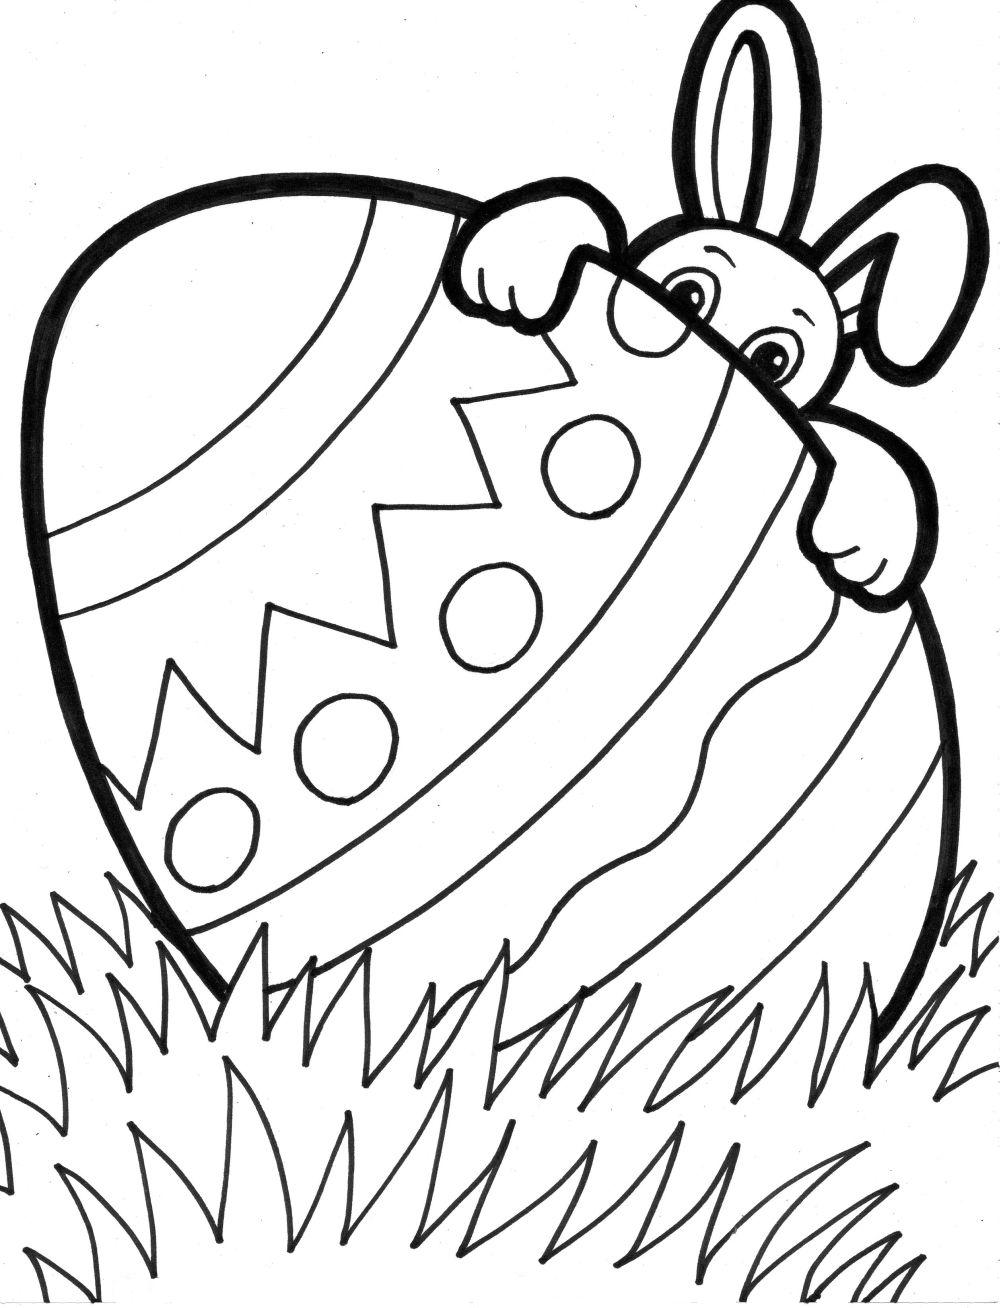 coloring pages easter free easter coloring pages for kids high printing quality coloring pages easter